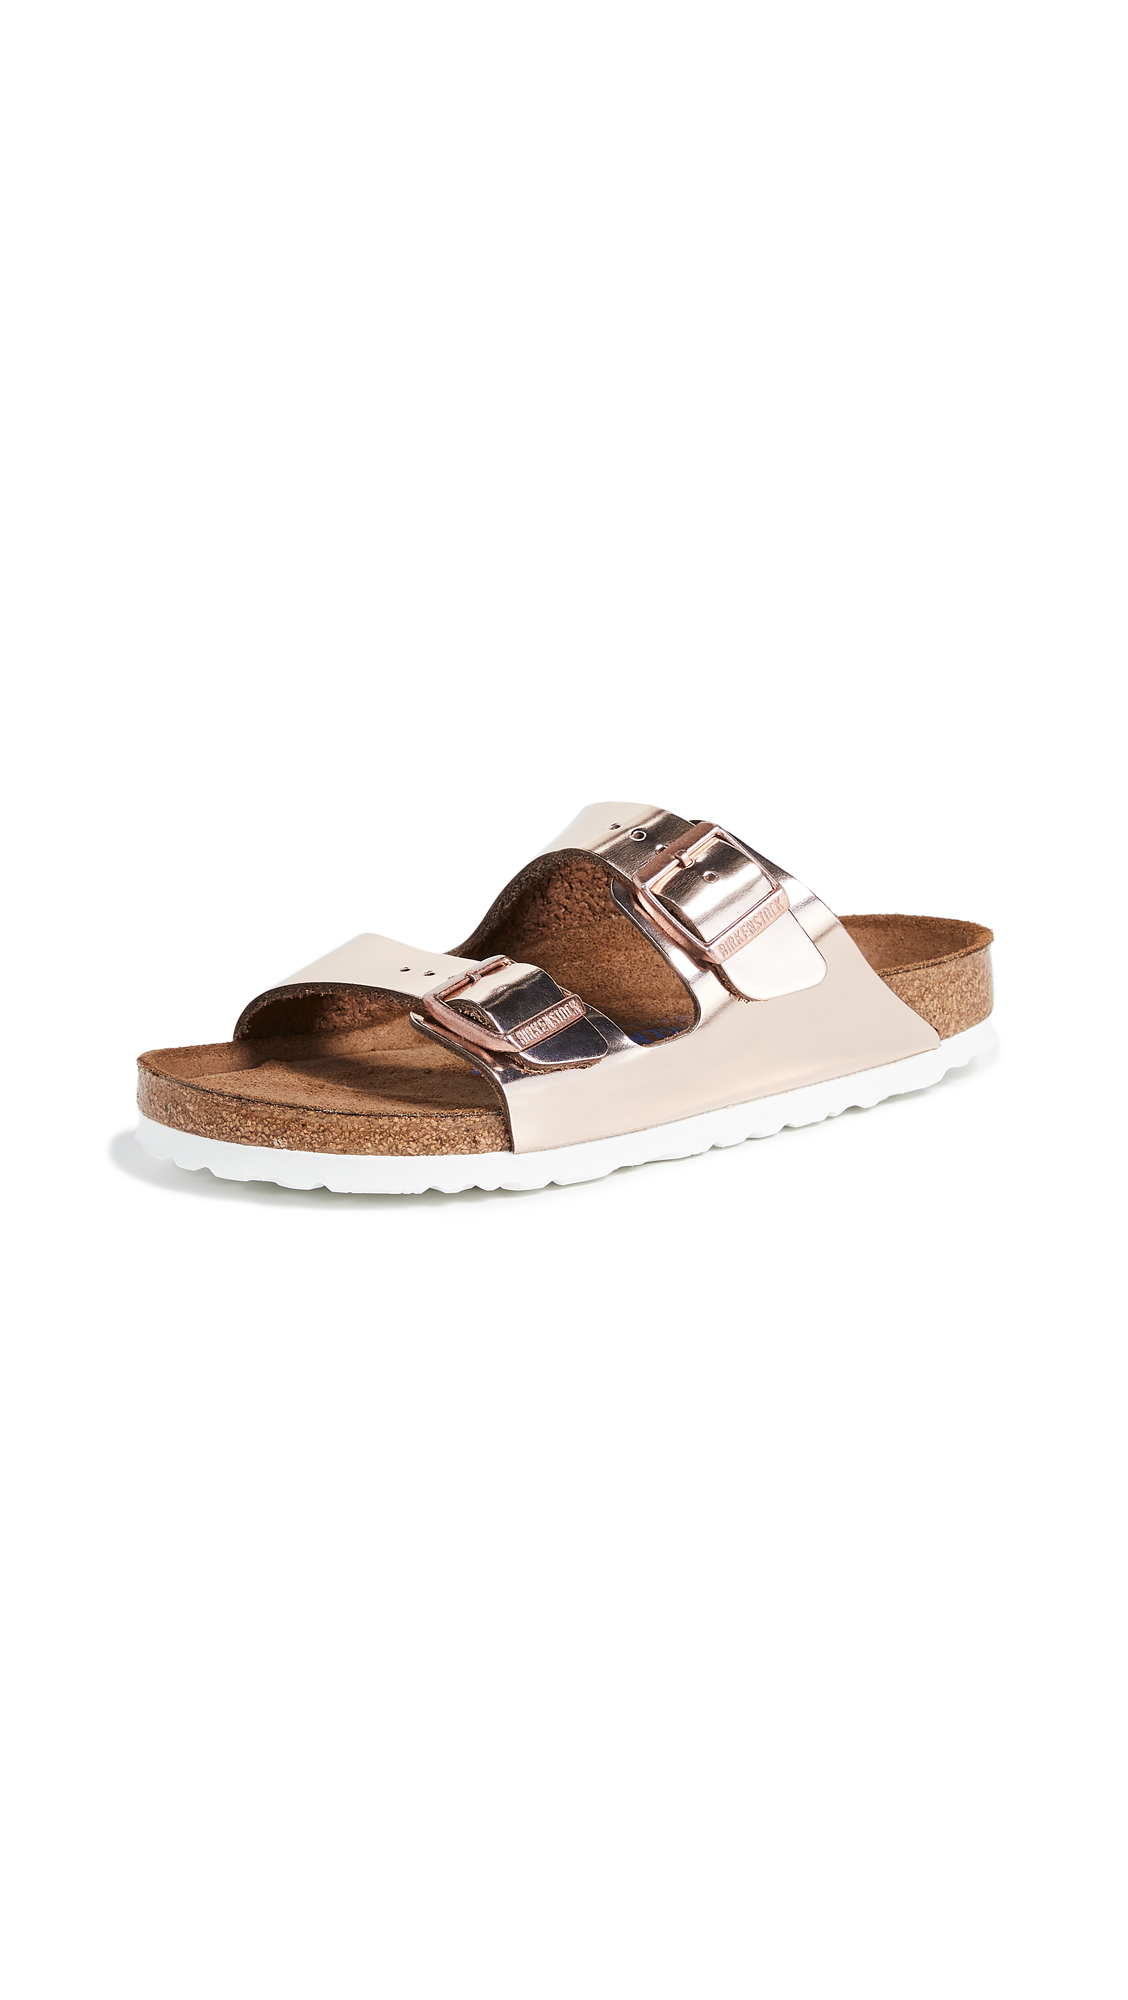 Birkenstock Arizona SFB Sandals - Metallic Copper